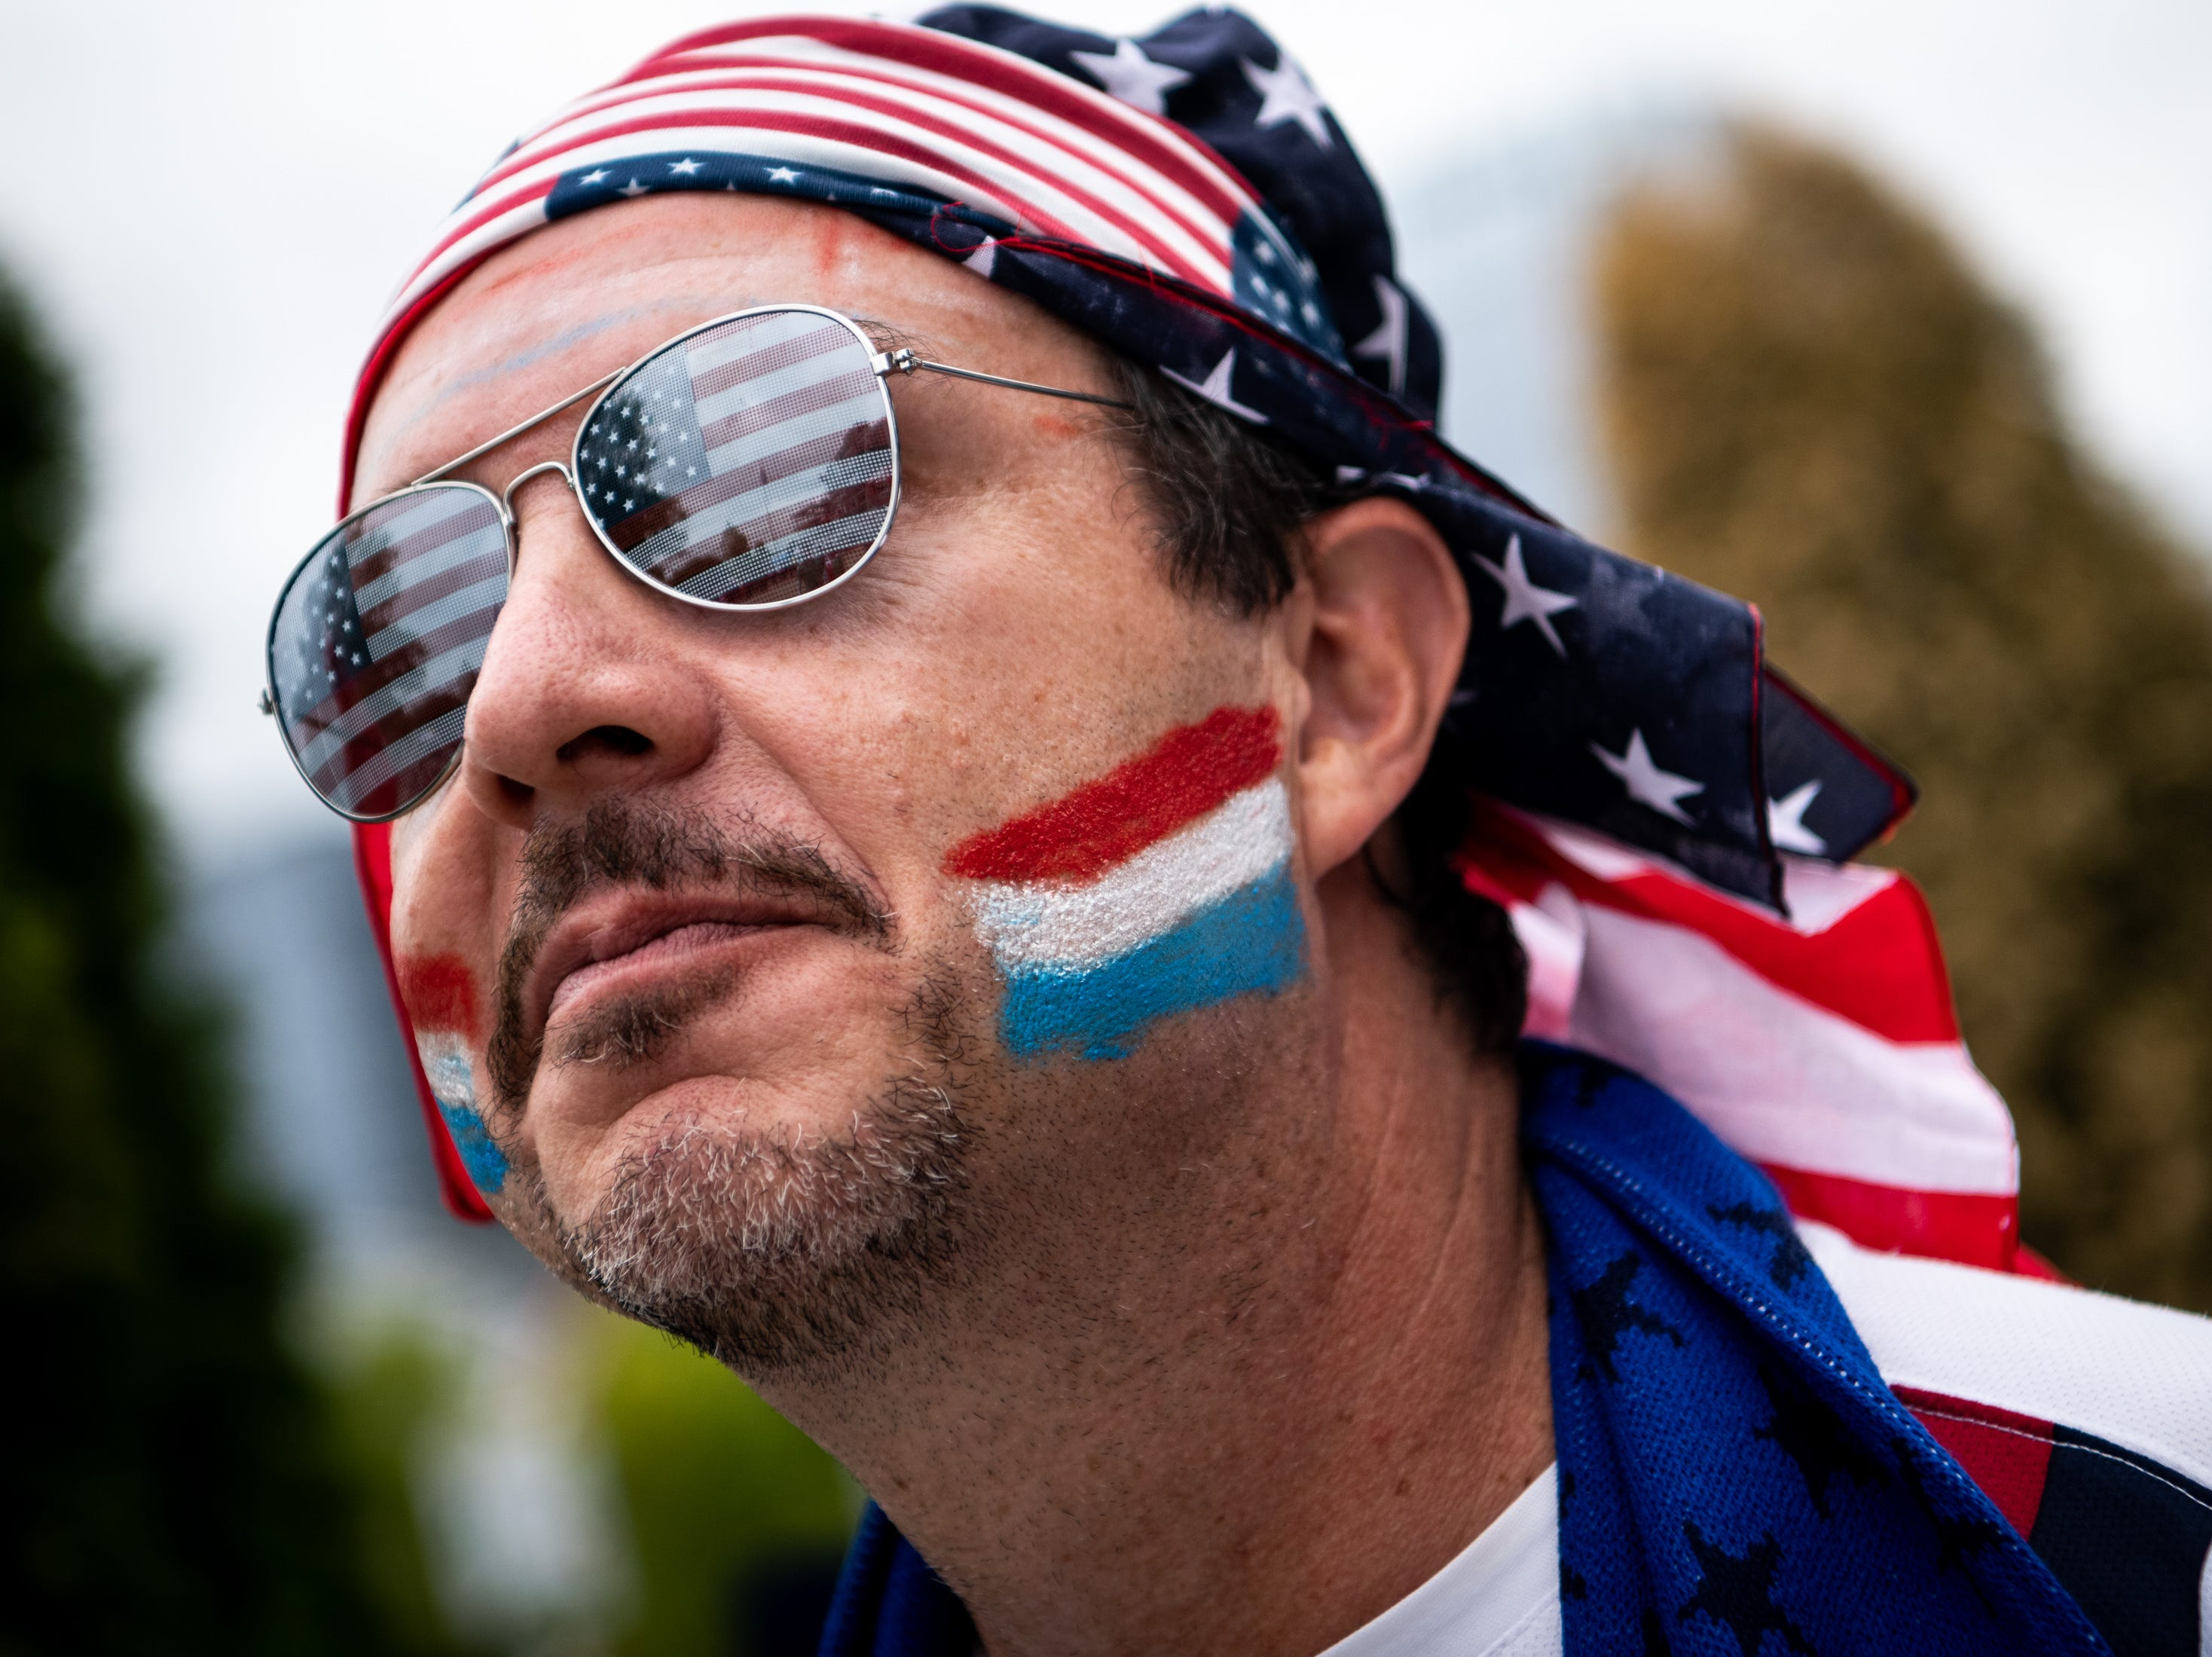 Cisco Hodges, of Asheboro, N.C., waits outside of the stadium before the game between USA and Mexico at Nissan Stadium in Nashville, Tenn., Tuesday, Sept. 11, 2018.